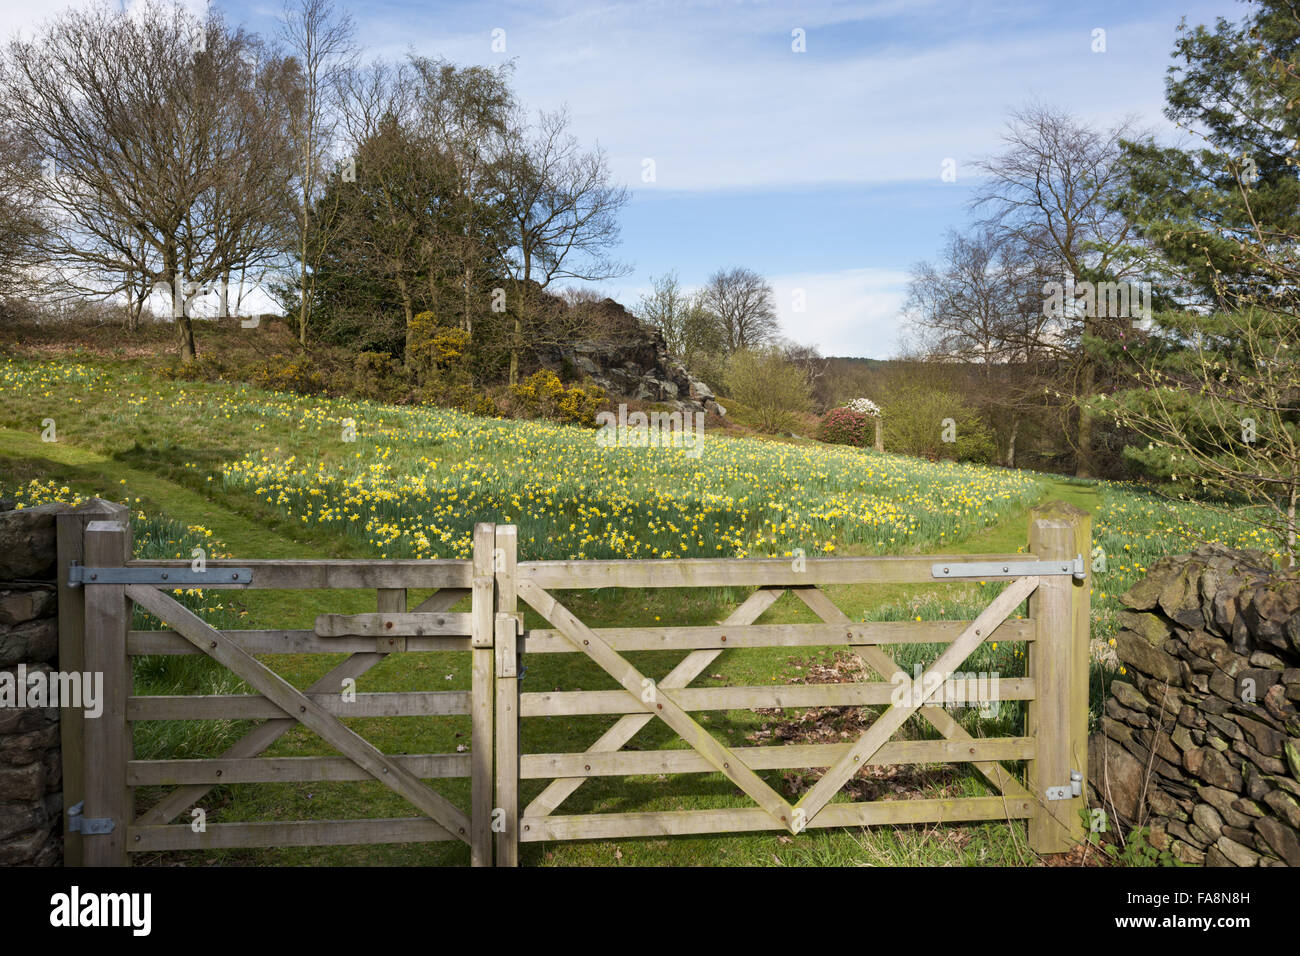 The rocky outcrop seen from the stableblock at Stoneywell, Leicestershire. - Stock Image